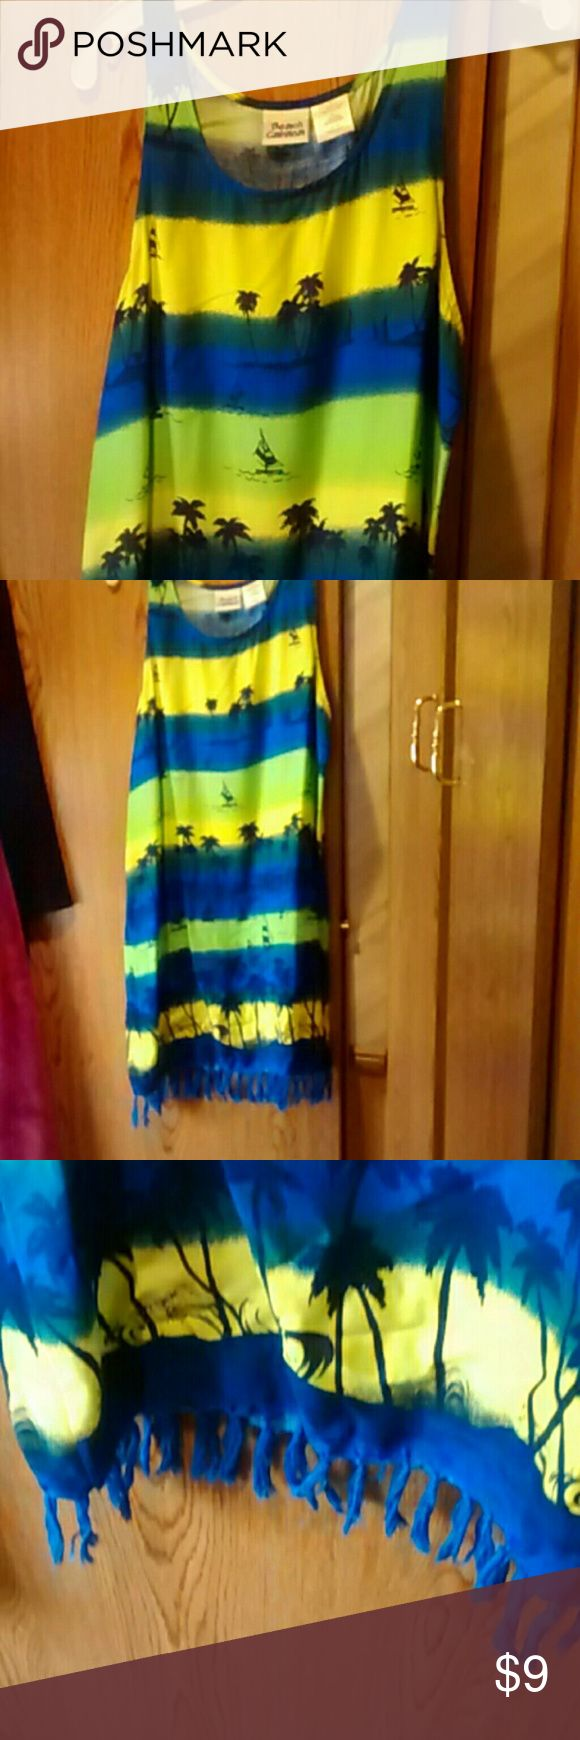 Dress/Swimsuit cover up sz S Gorgeous dress with tropical scene. Tasseled hem. Beach Cabana, size Small. Gently preowned condition. Smoking/pet home. Sprayed with Febreeze and packaged with dryer sheets. Questions and offers welcome. No trades please.  Happy to bundle. Thanks for looking.?? Dresses Mini